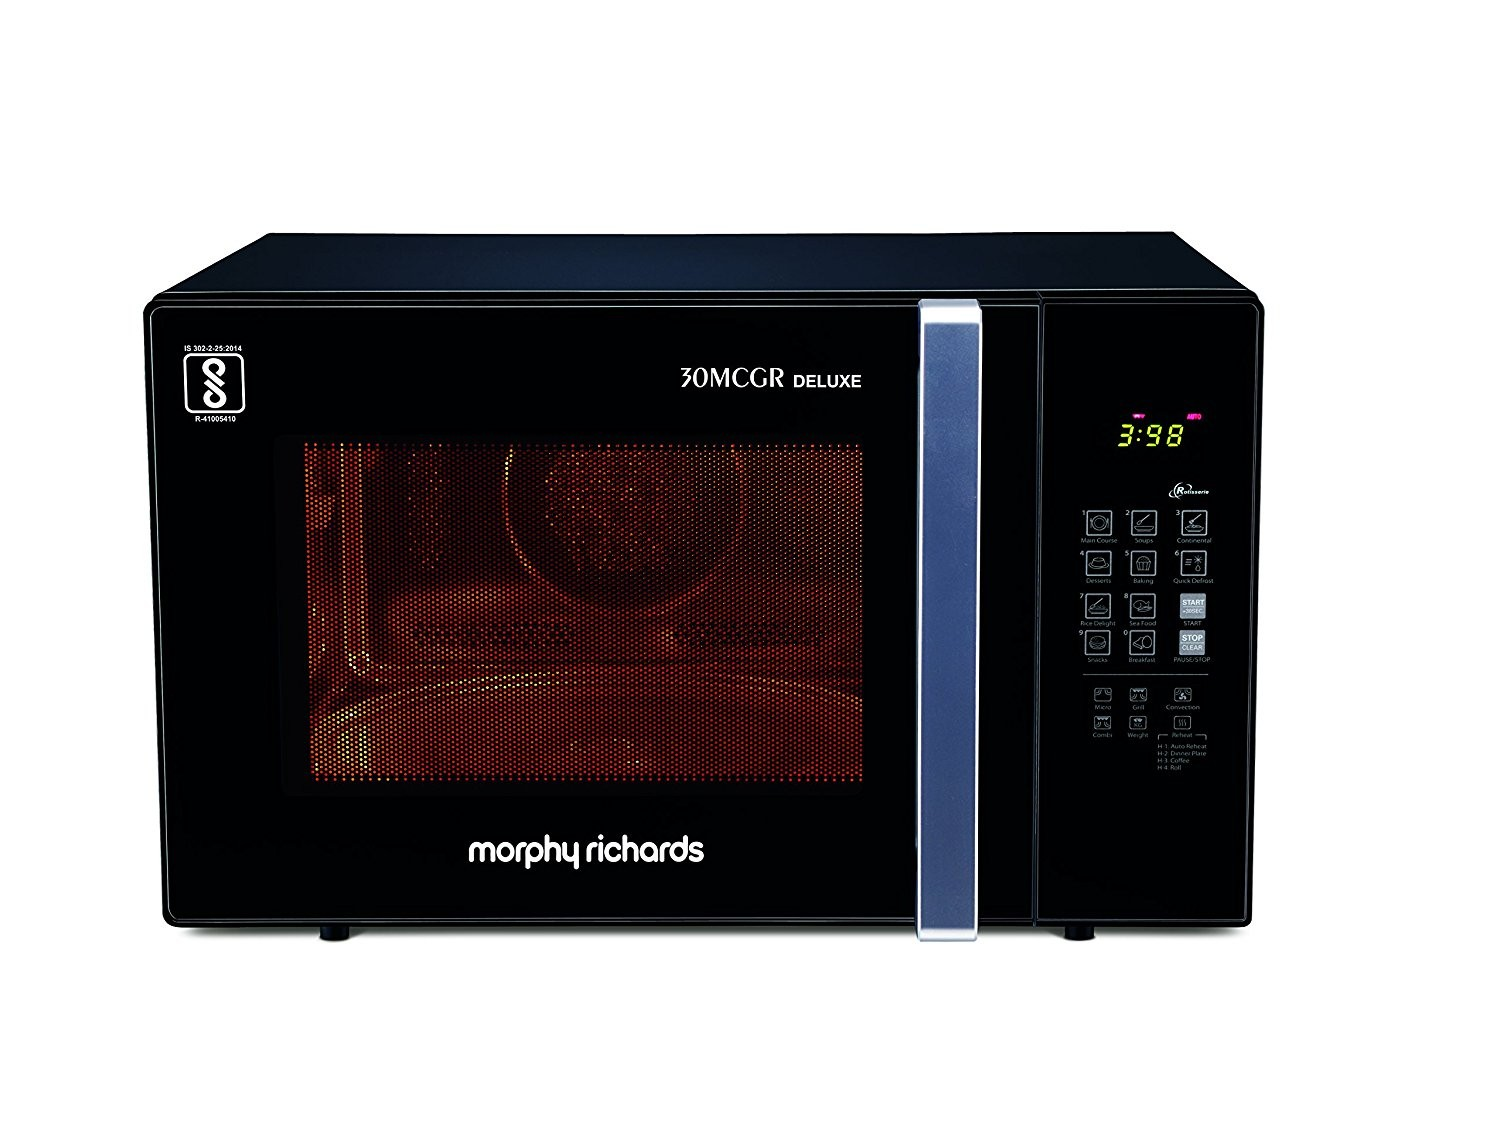 30MCGR 30 liters Morphy Richards microwave oven